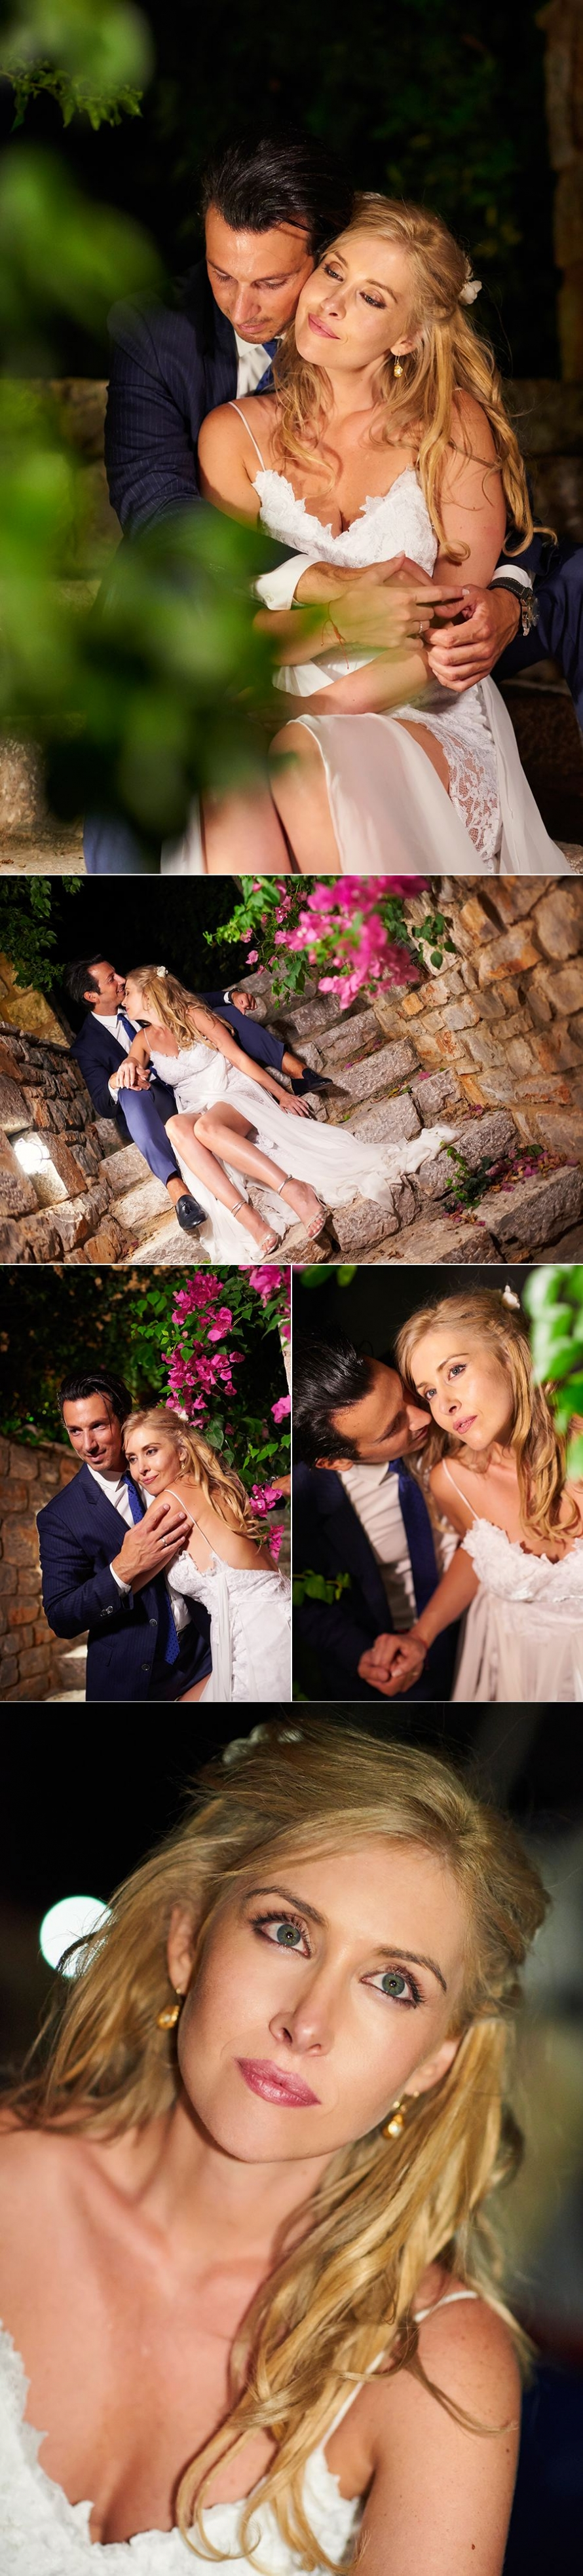 giannis-stella-wedding-photo-14